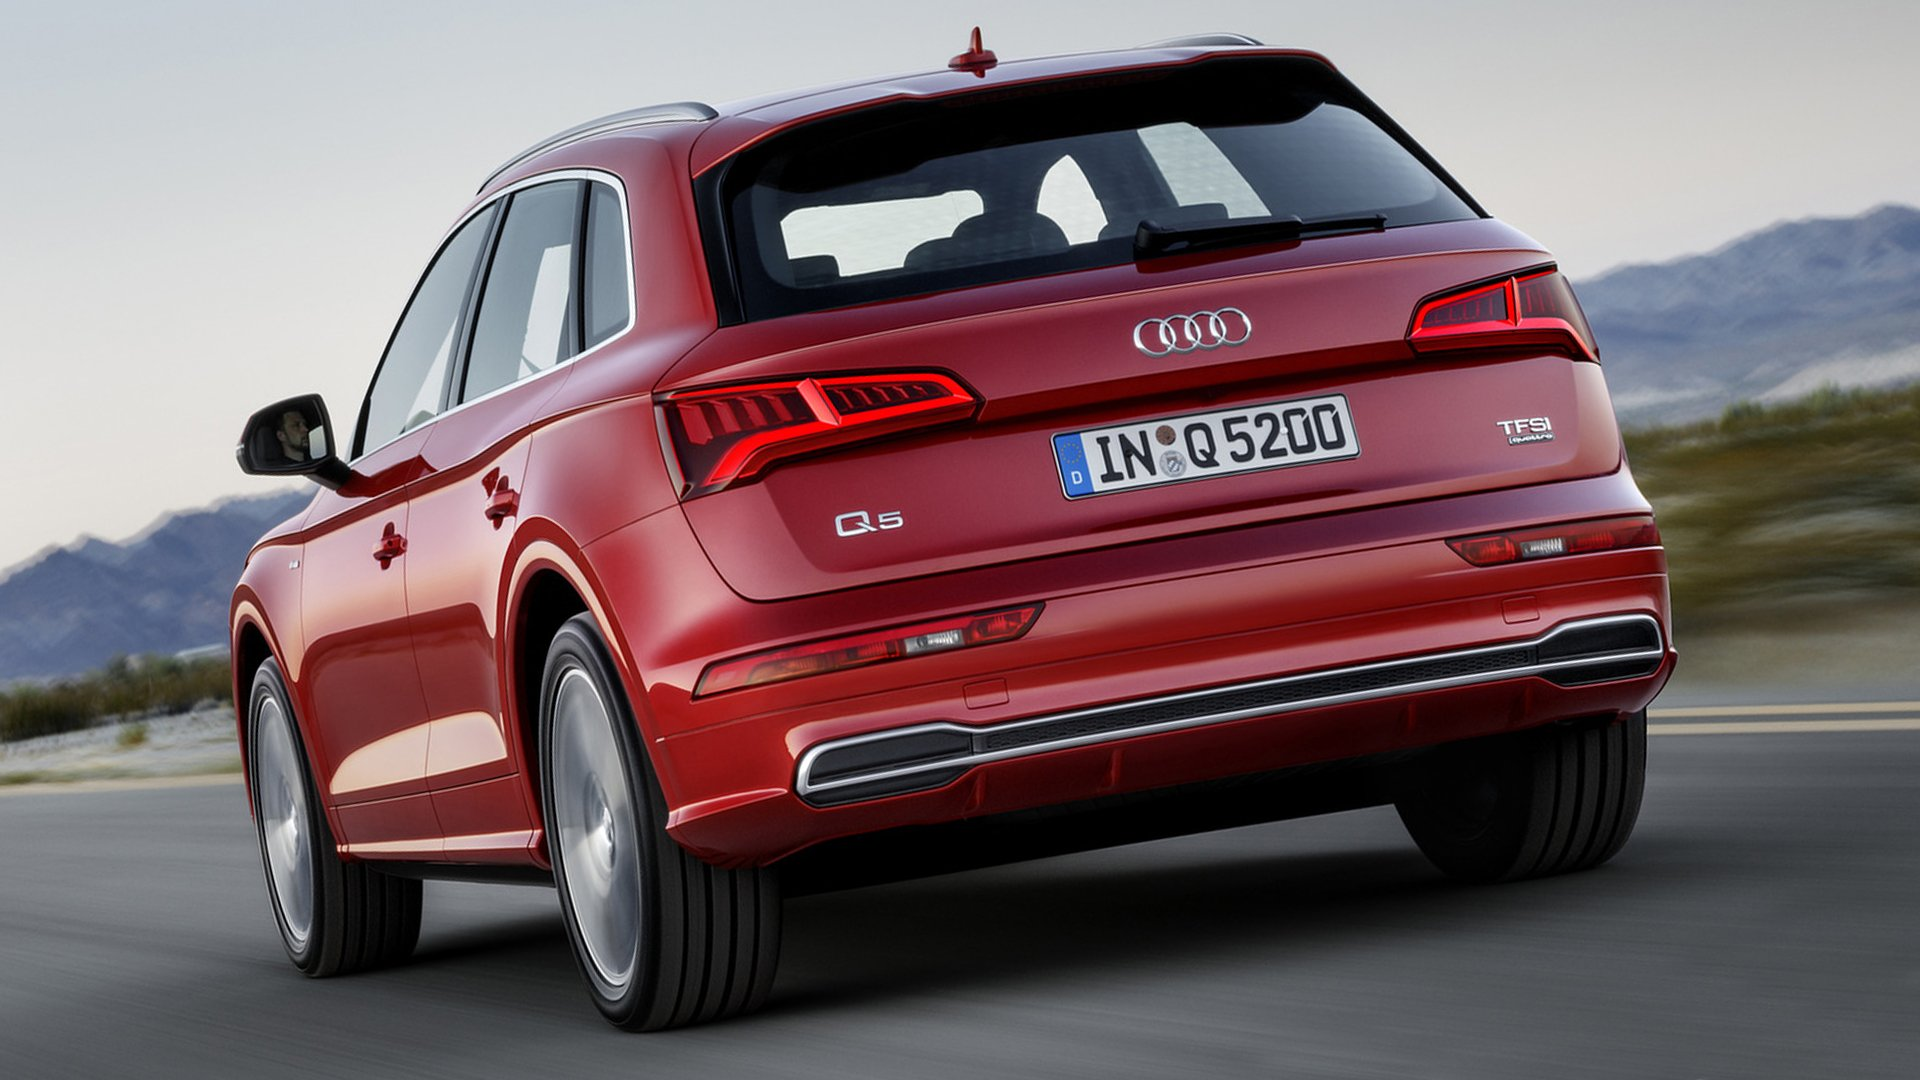 2018 Audi Q5 Back View HD